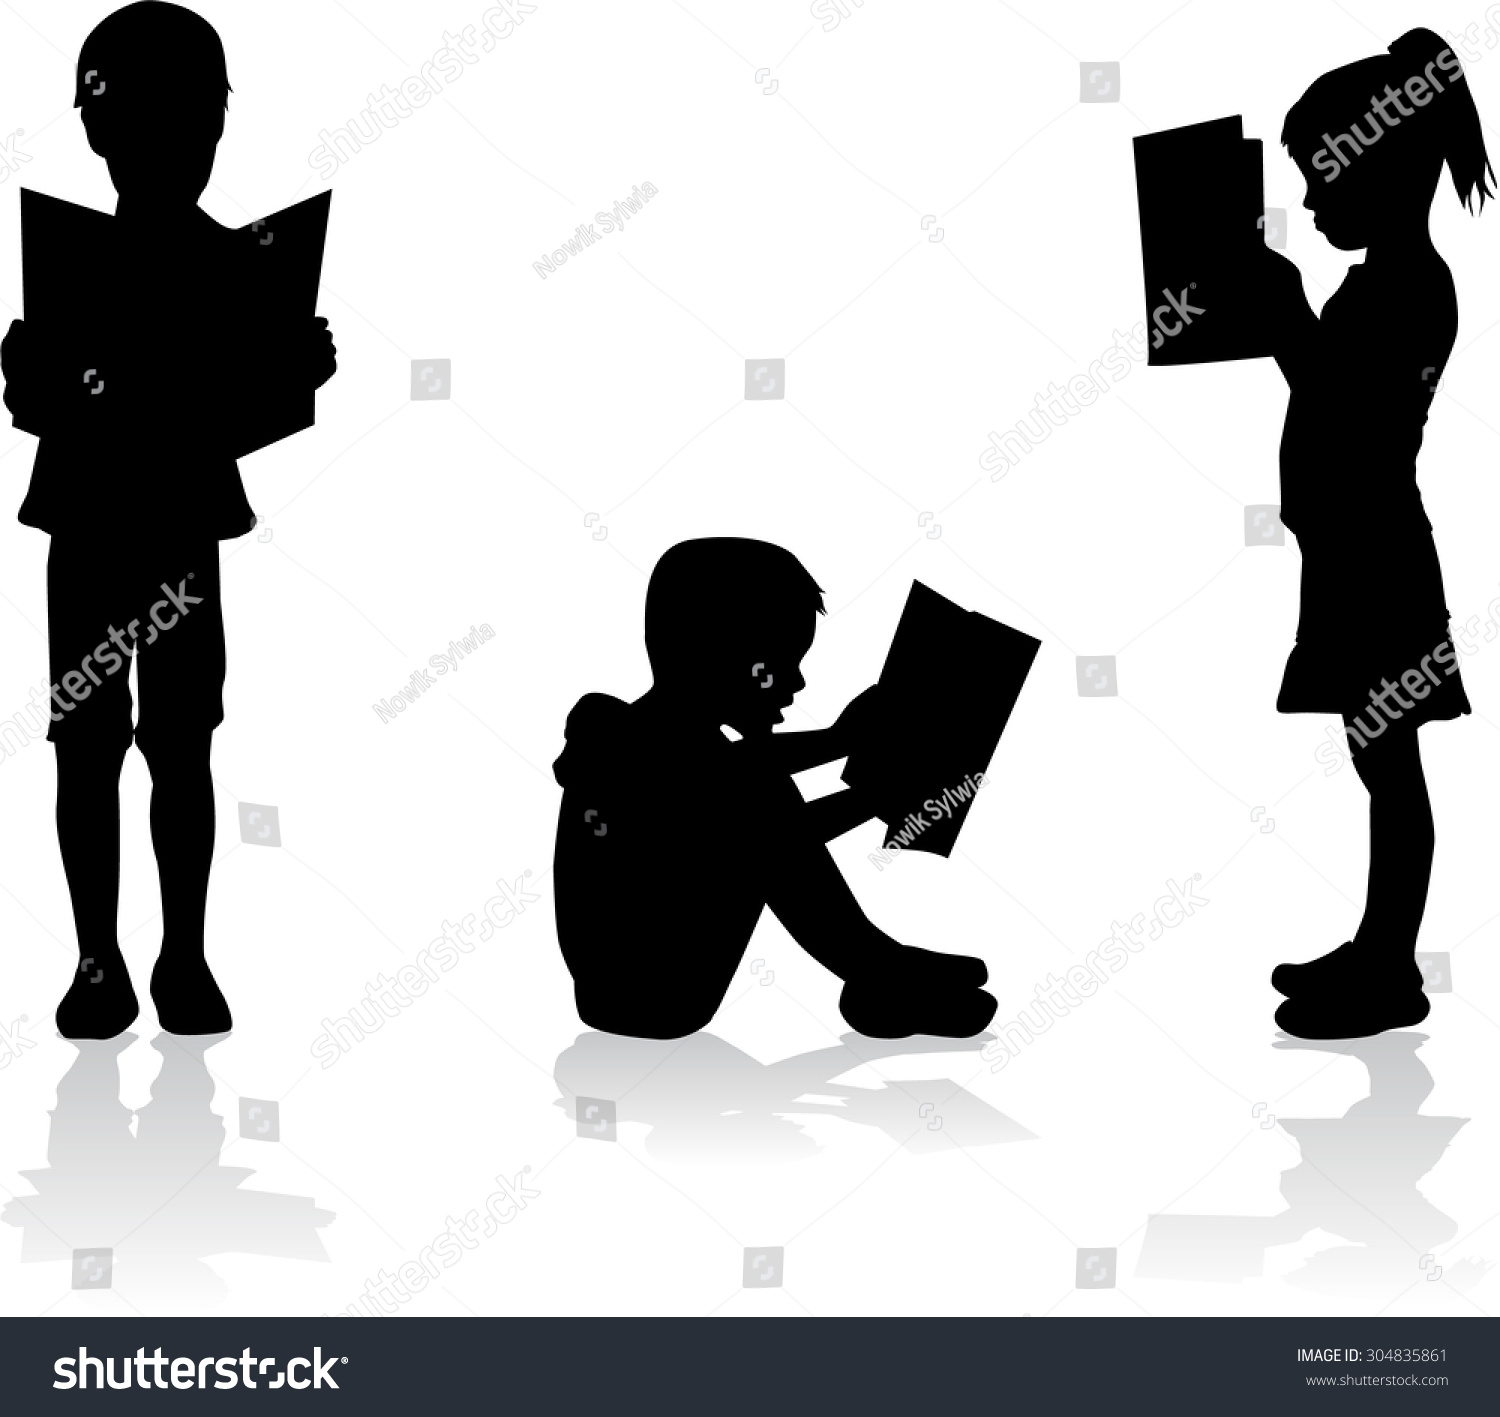 Silhouette Child Reading Book At Stock Vector 304835861 - Shutterstock Children Reading Silhouette